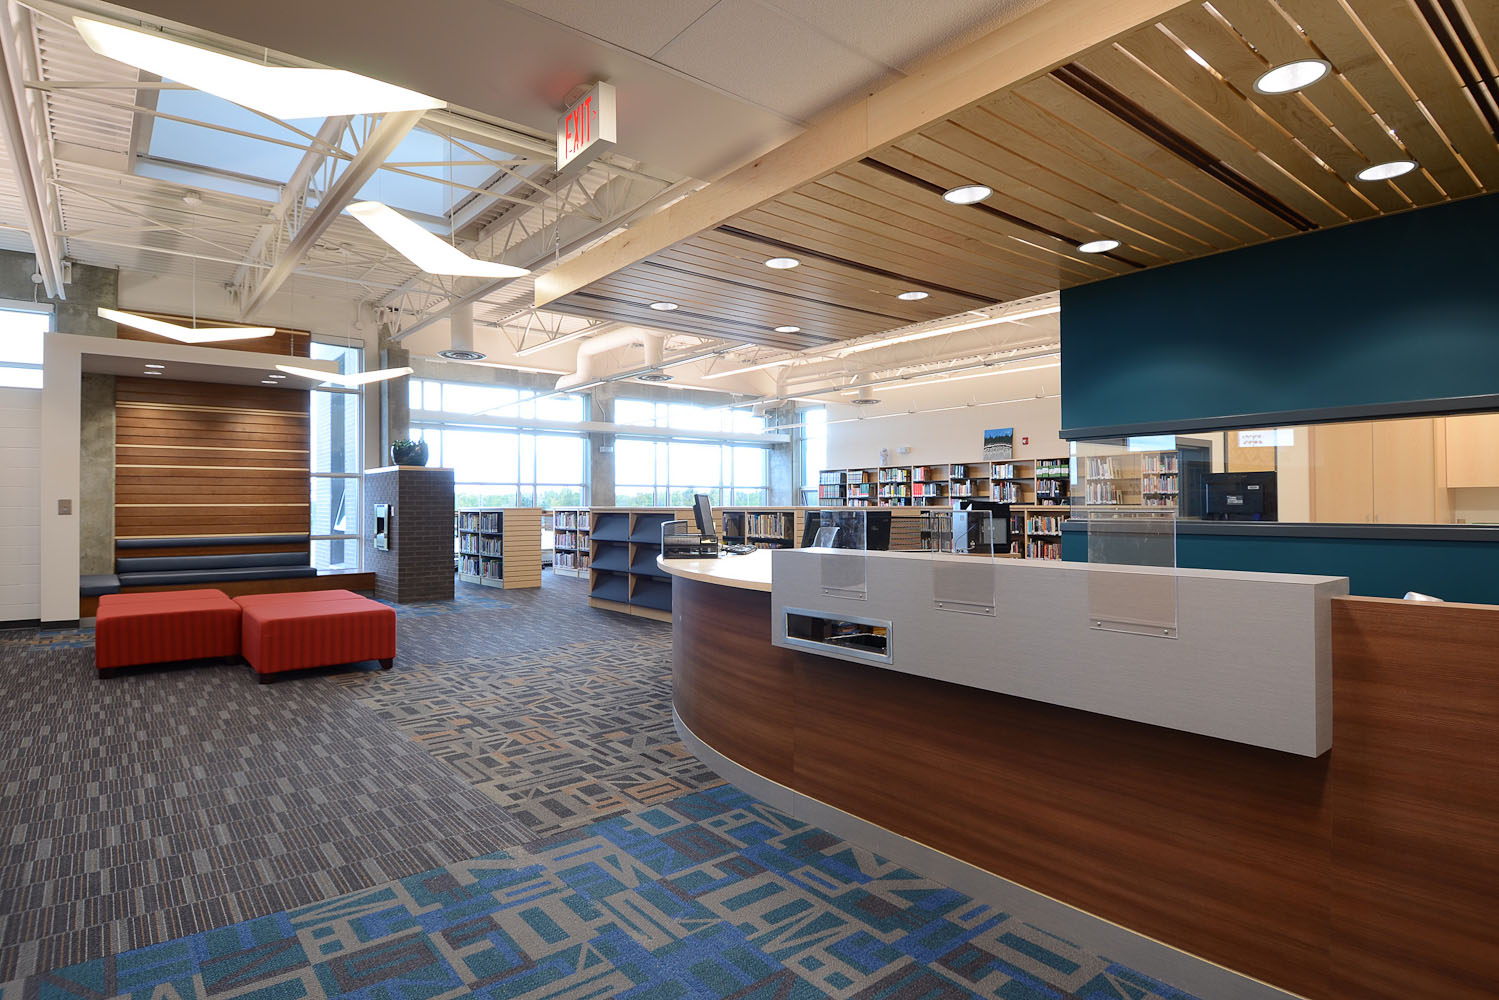 Library by Winnipeg architectural photographer